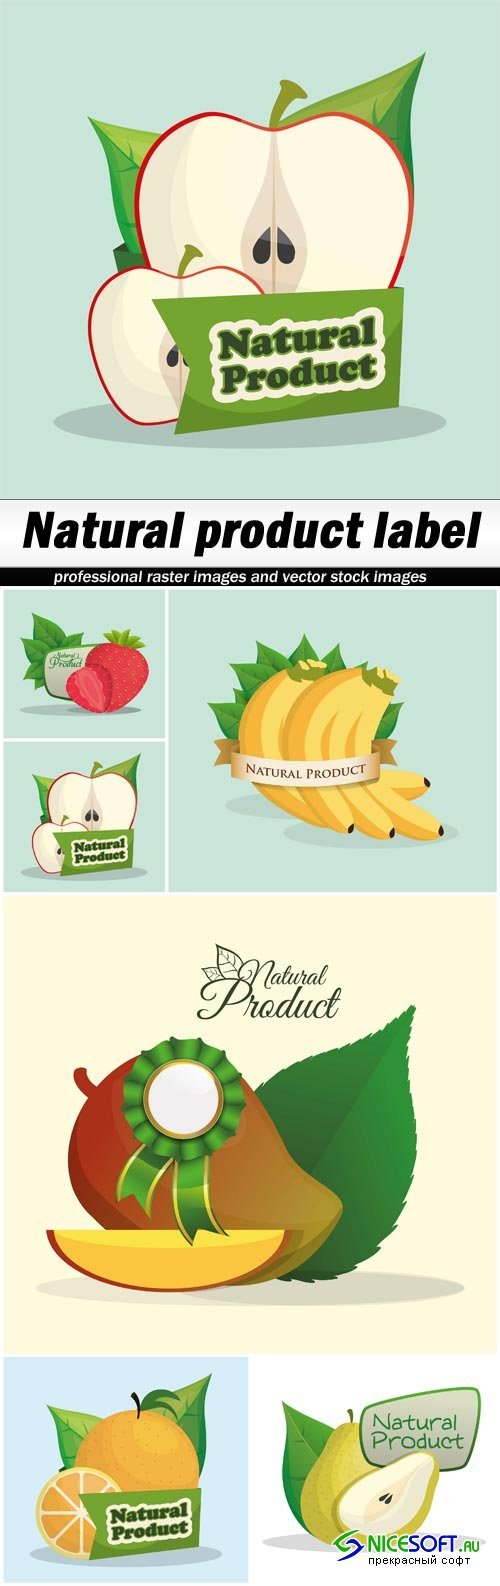 Natural product label - 6 EPS